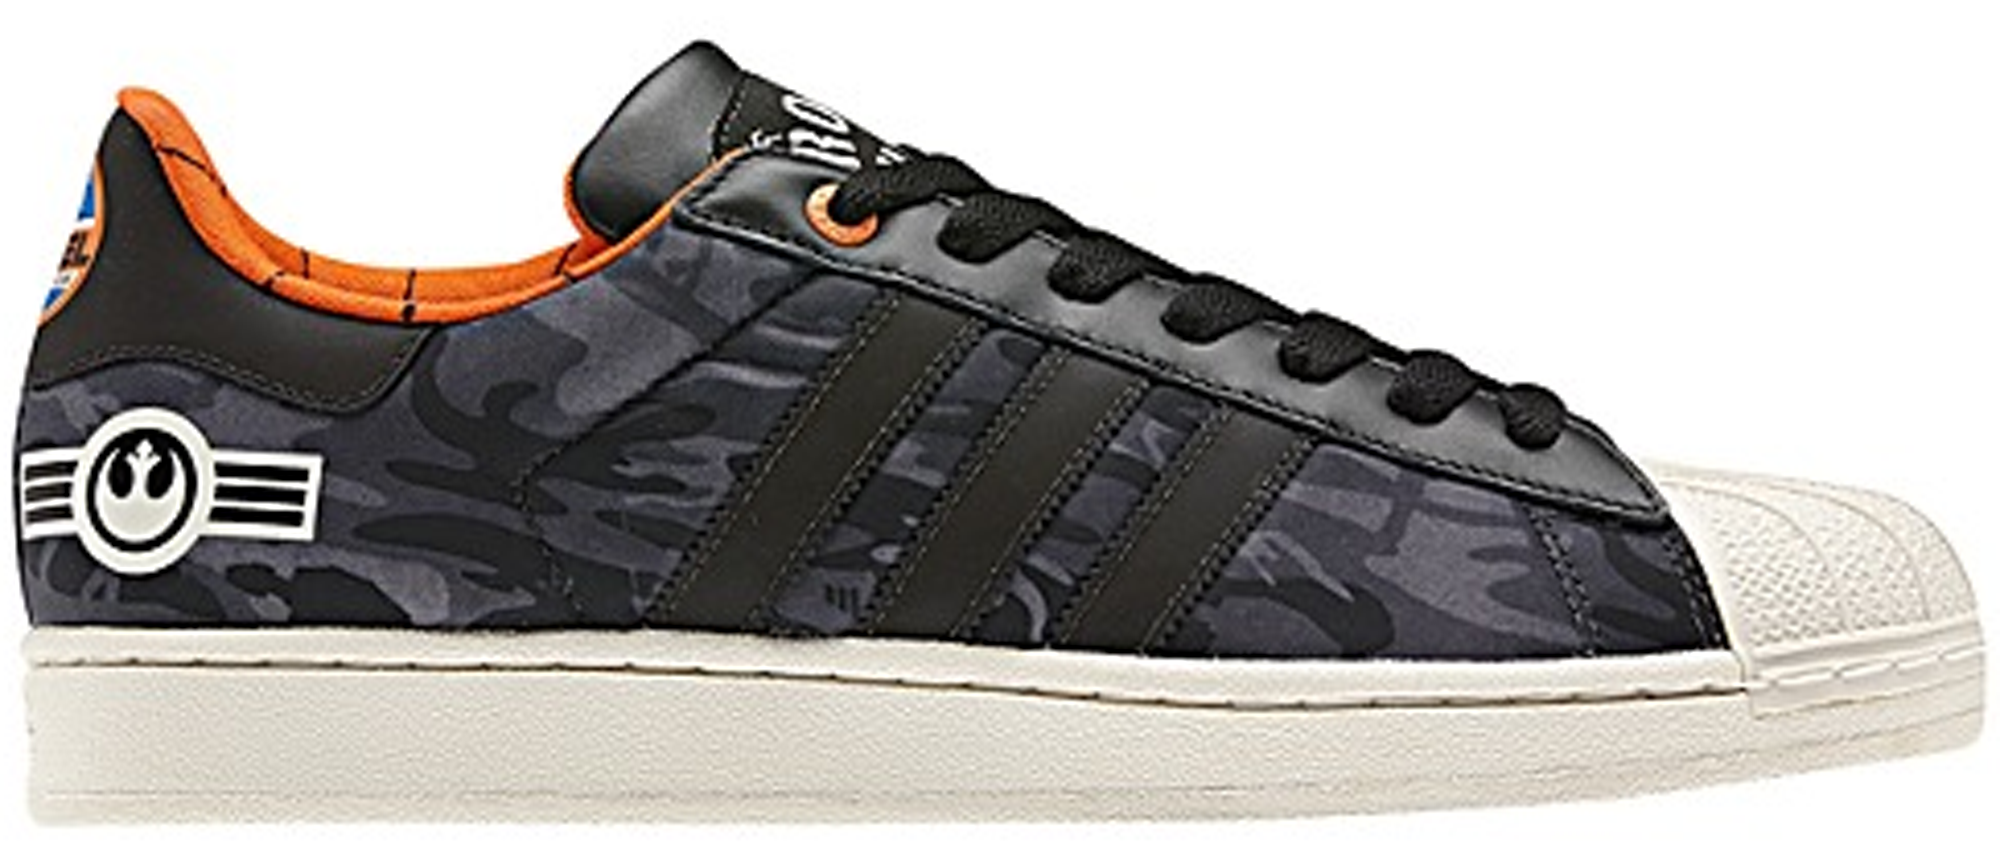 adidas Superstar 2 Star Wars Rebel Alliance